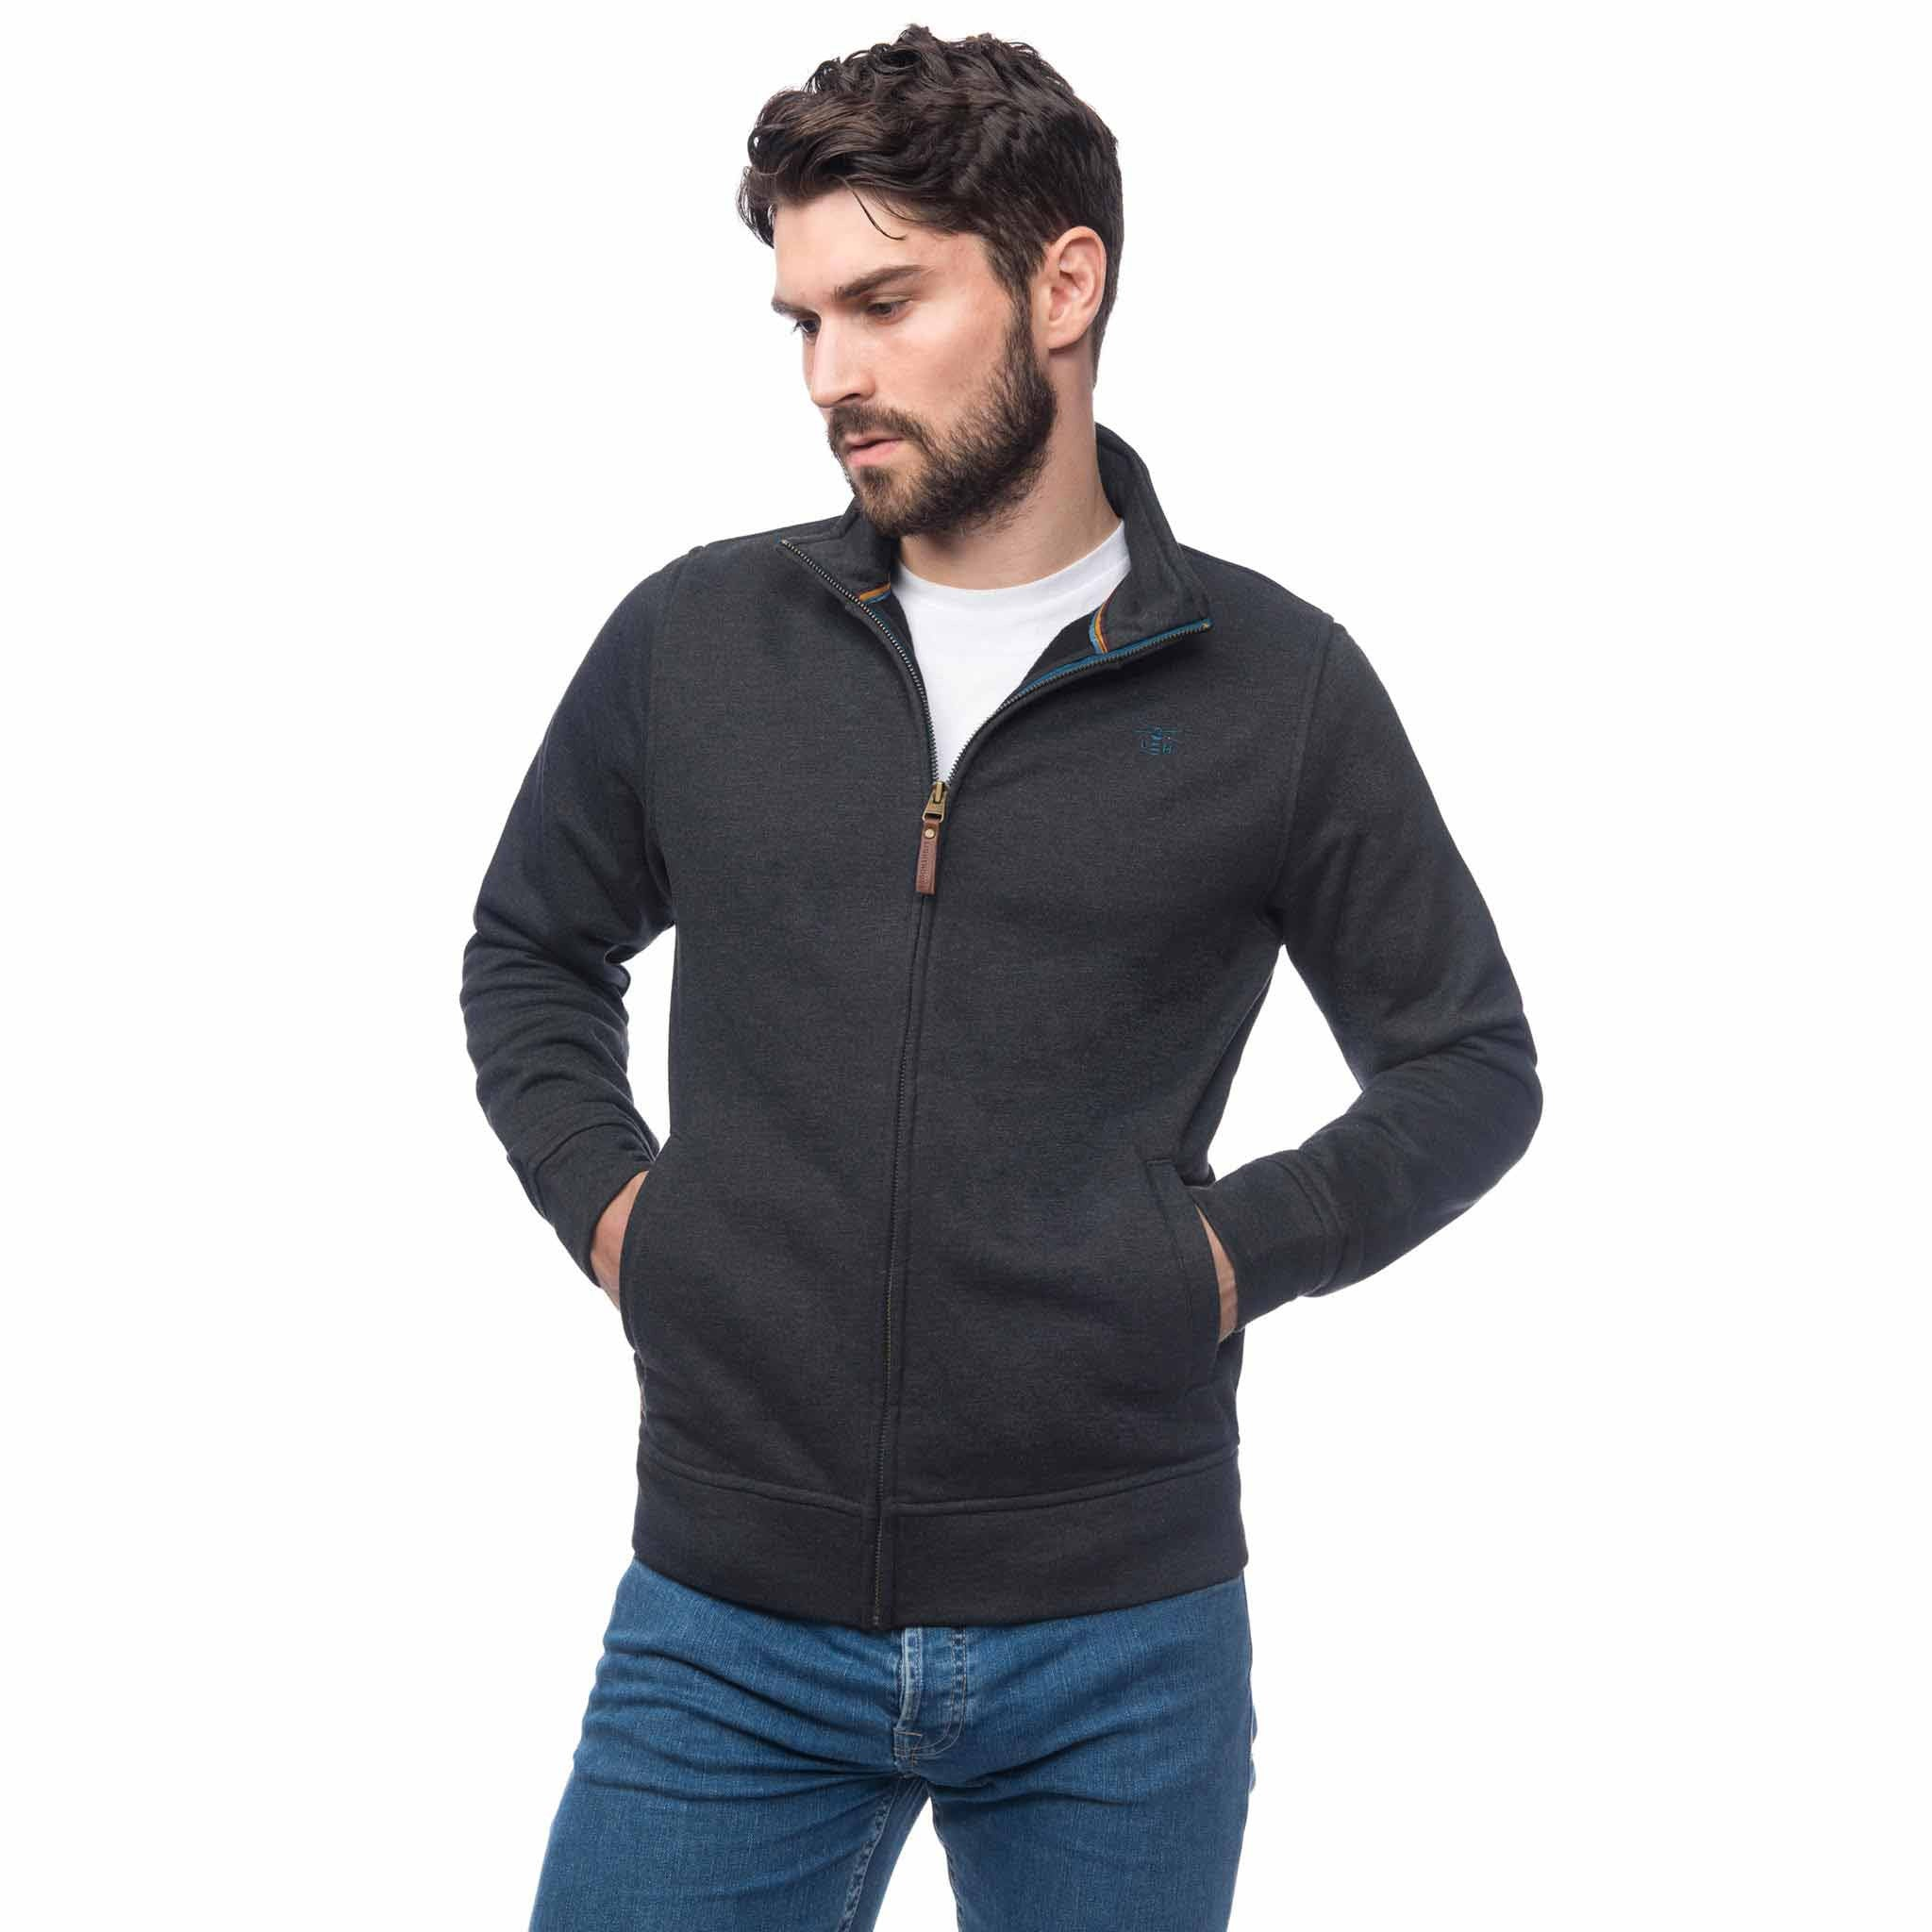 Lighthouse Mens Cove Jersey Top in Grey. Half zipped, hands in pockets.